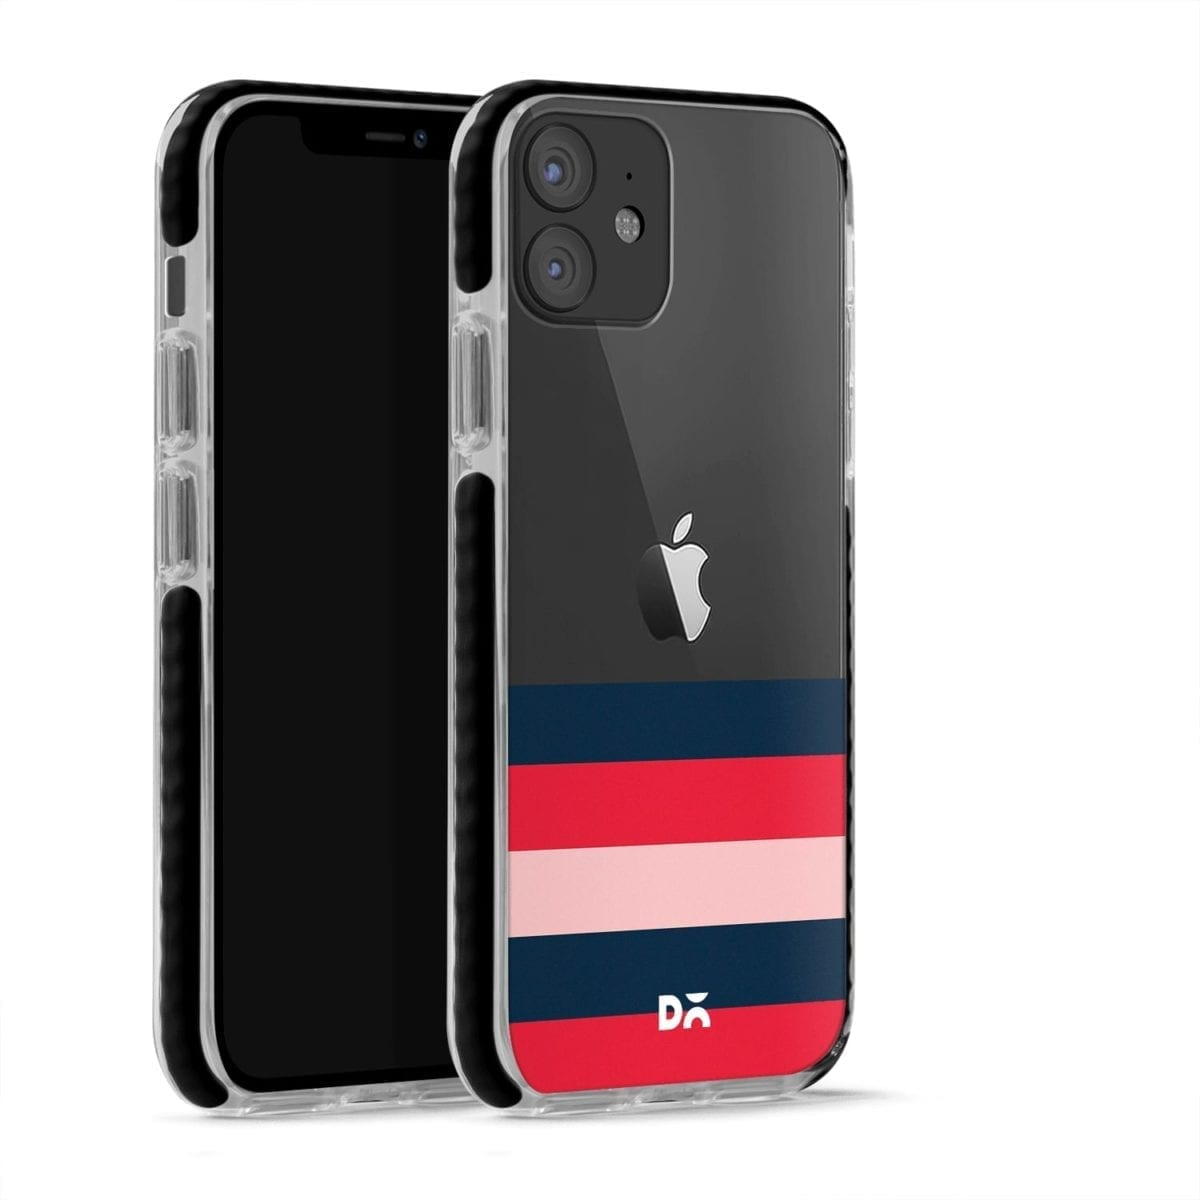 Dark Lines Stride Case Cover for Apple iPhone 12 Mini and Apple iPhone 12 with great design and shock proof | Klippik | Online Shopping | Kuwait UAE Saudi